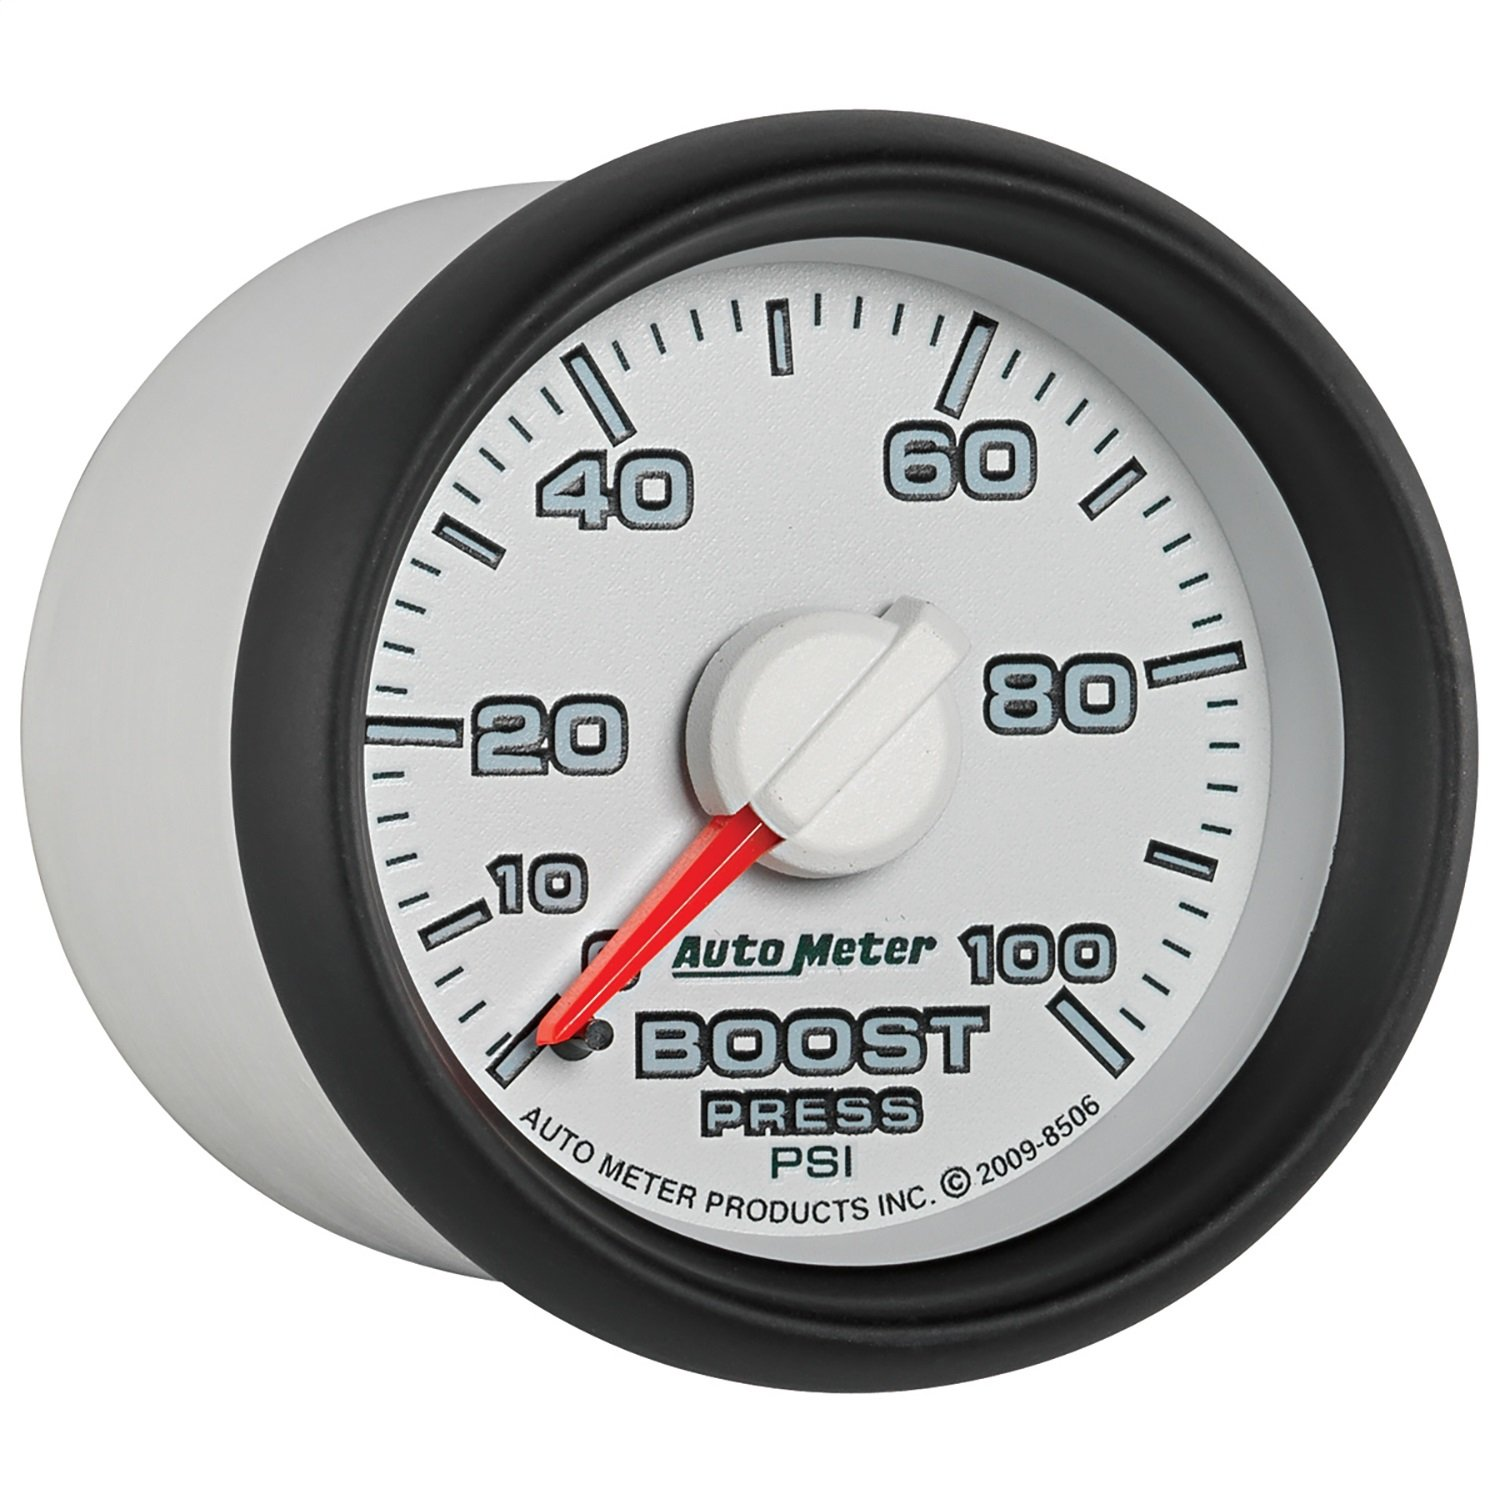 Auto Meter 8506 Factory Match 2-1/16' 0-100 PSI Mechanical Boost Gauge for Dodge